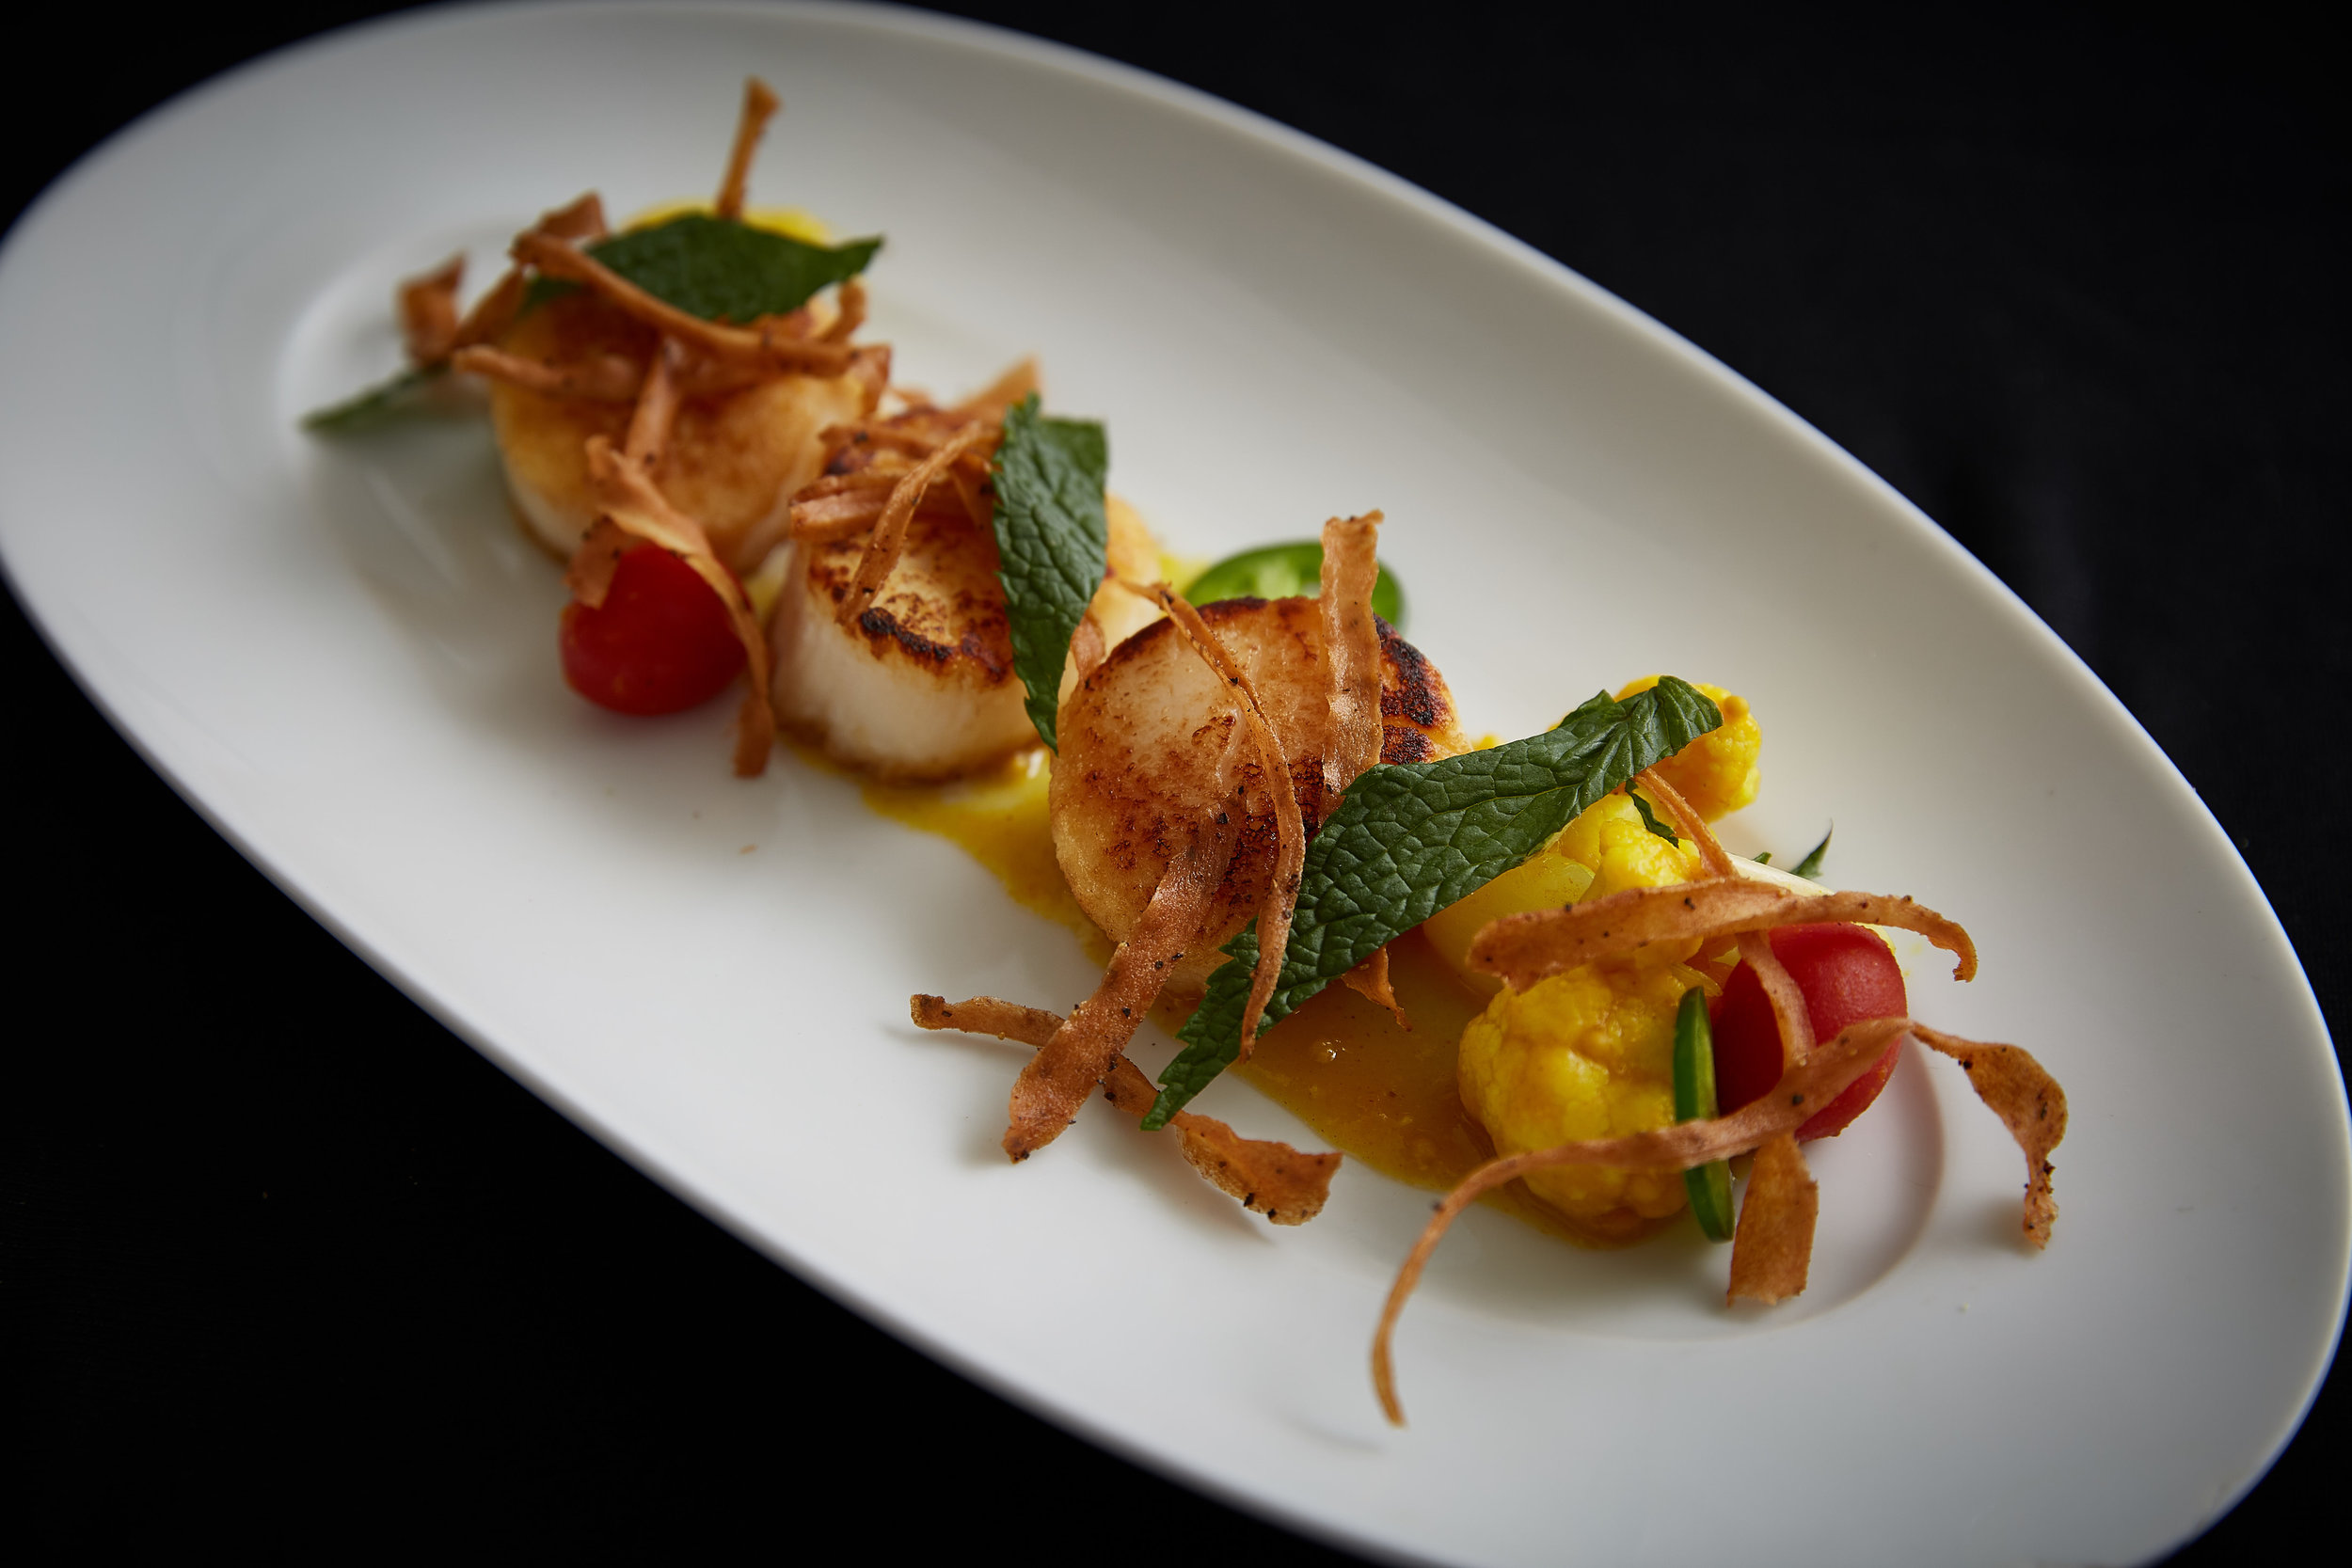 Seared scallops with cauliflower & tomato piccalilli.